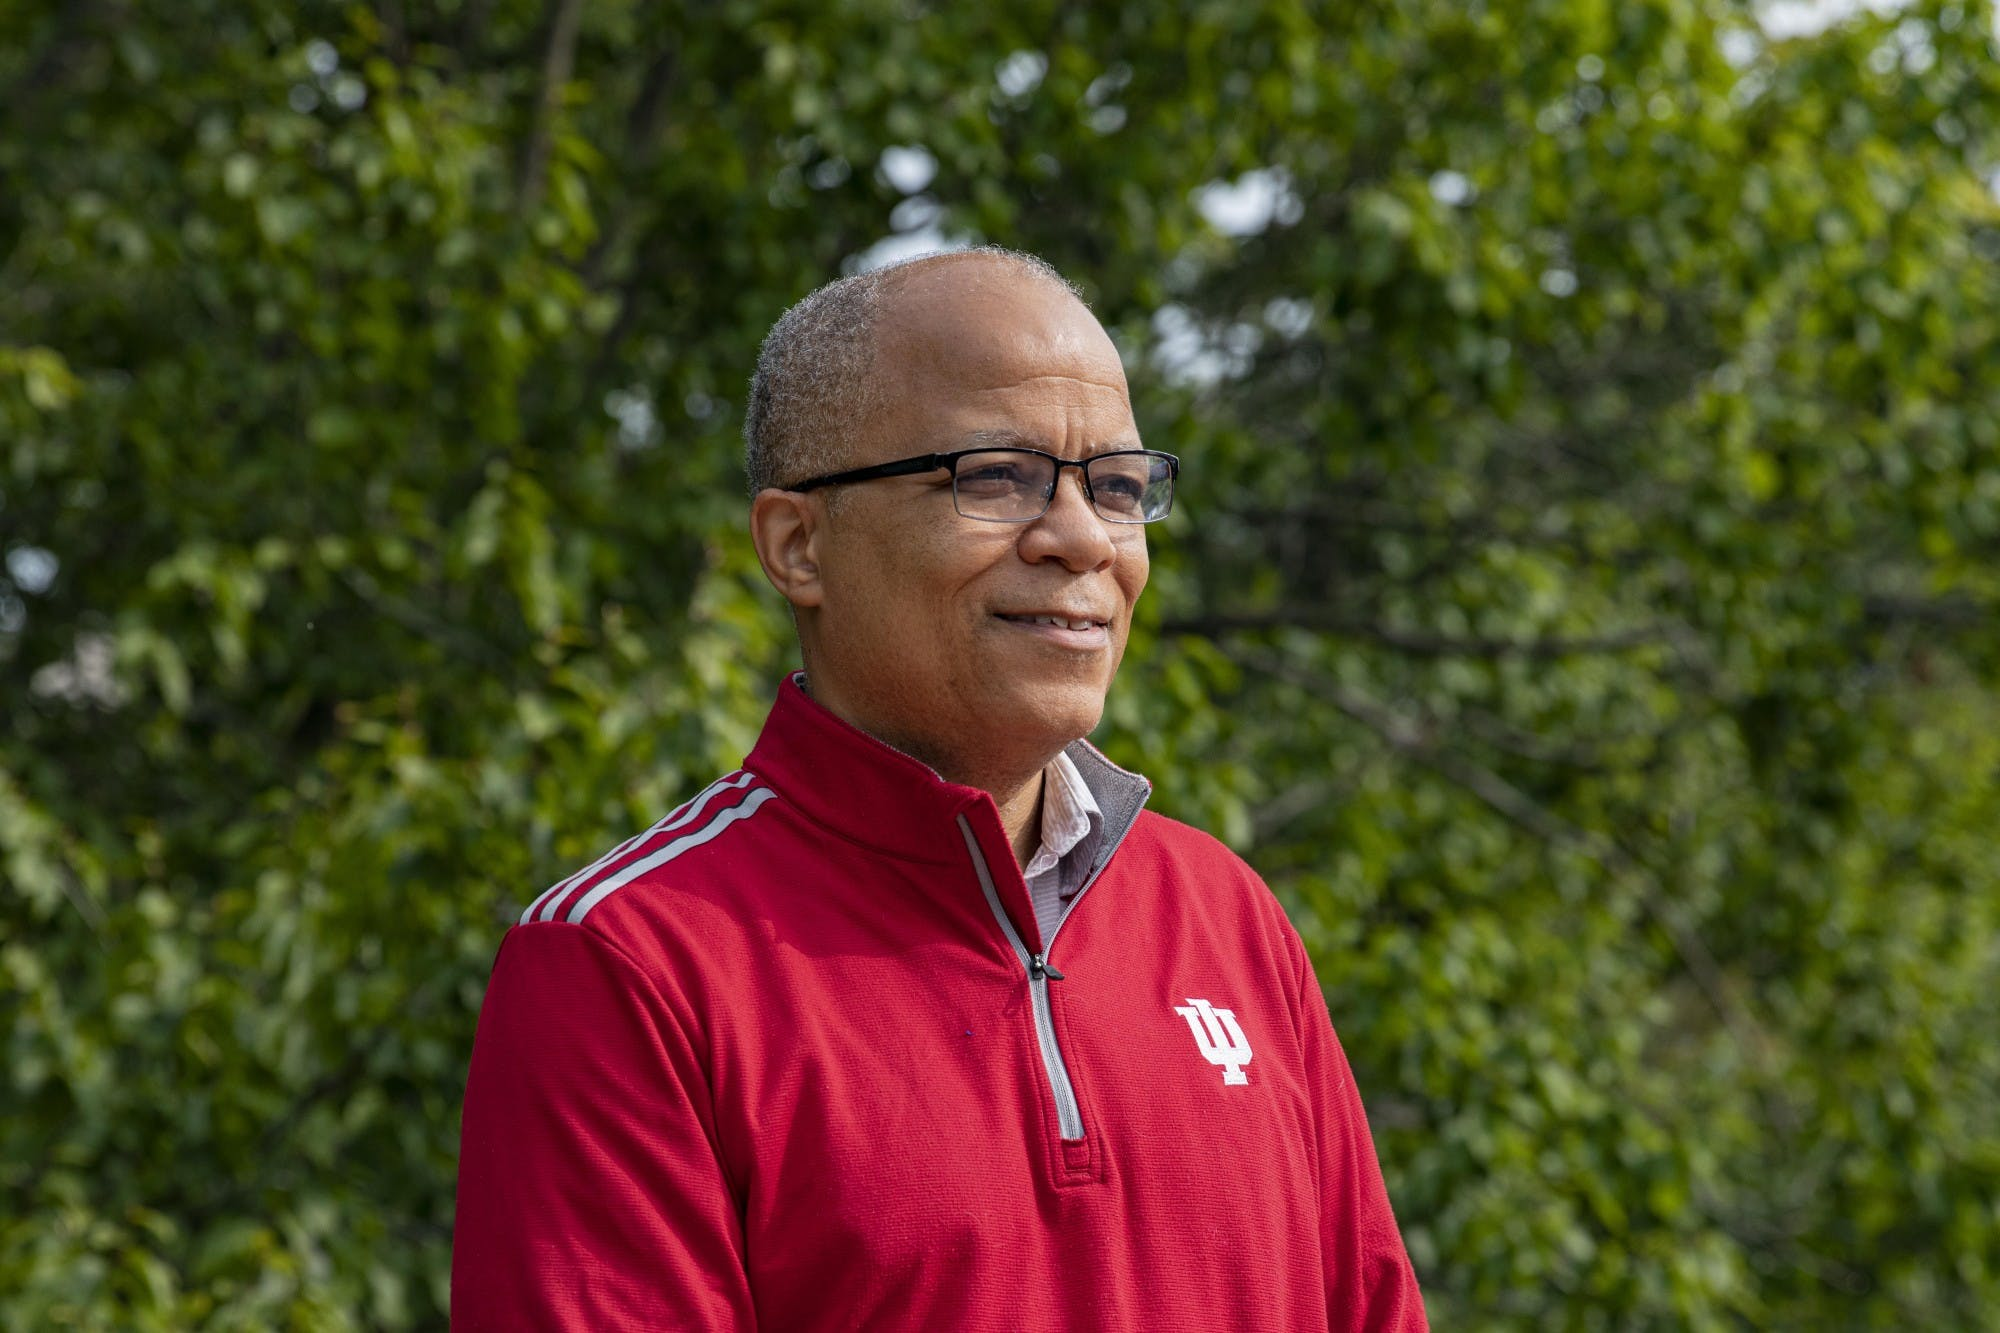 Director of Bias Response Cedric Harris poses for a portrait Sept. 14 at the Indiana Memorial Union. IU students and faculty can reports acts of bias against them to the bias incident response department.